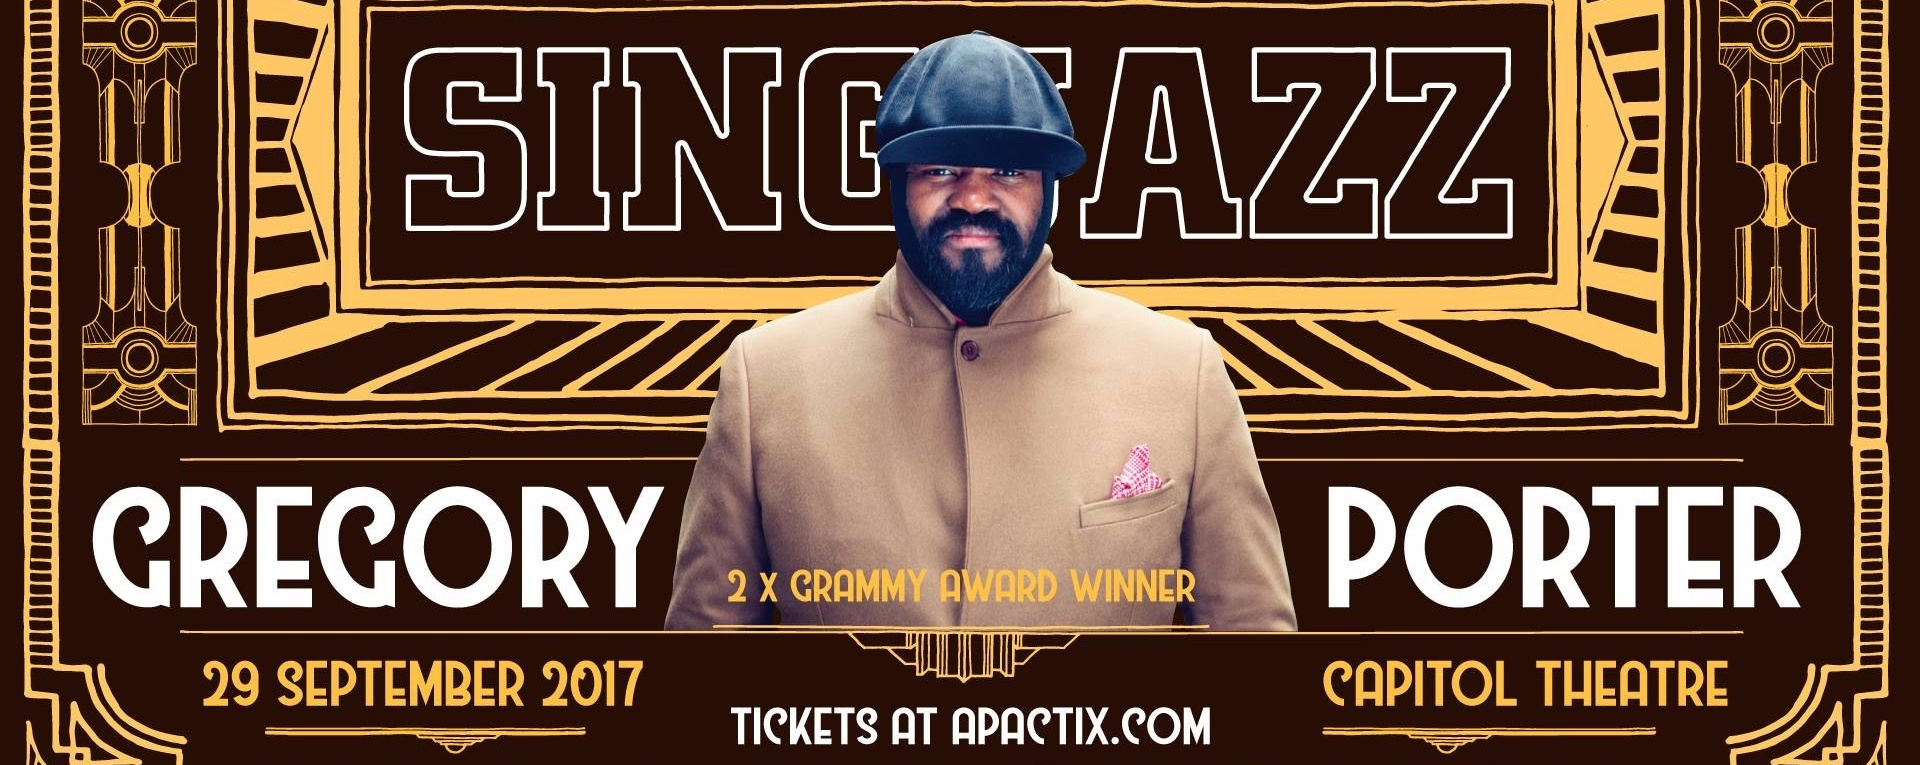 SING JAZZ Presents: Gregory Porter